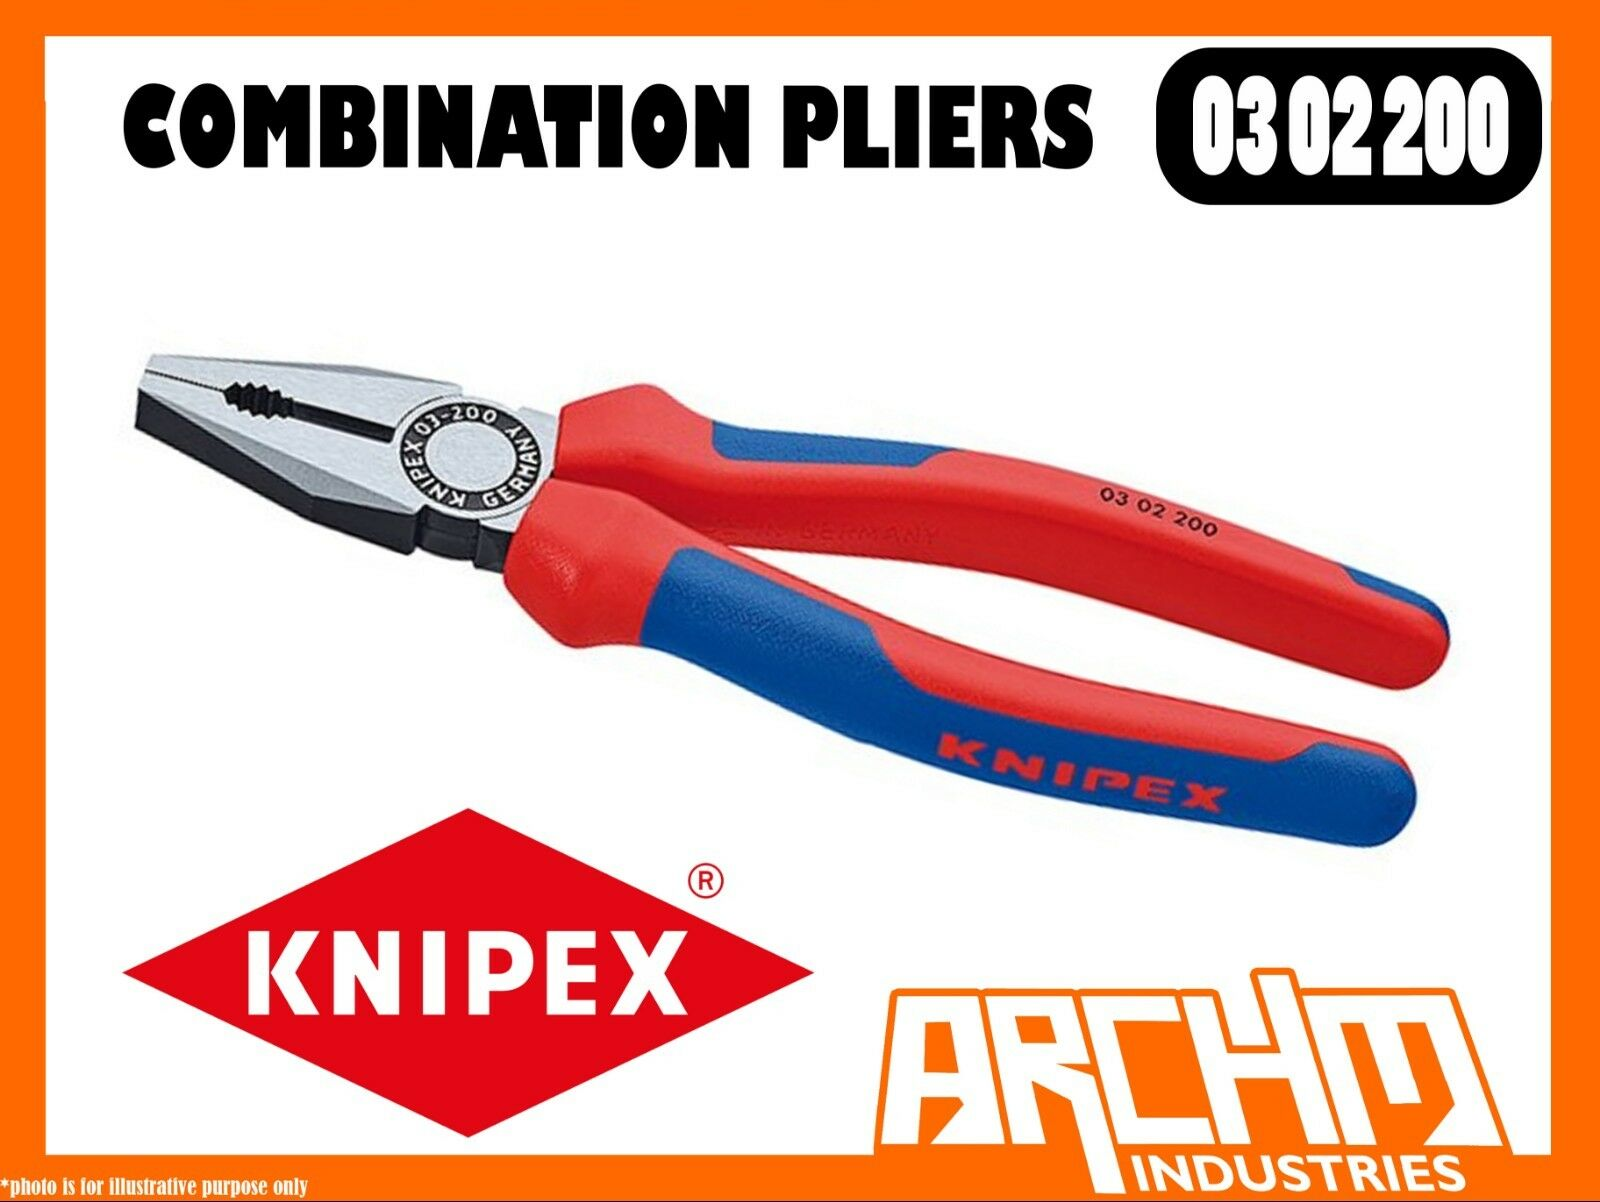 KNIPEX 0302200 - COMBINATION PLIERS - 200MM GRIP STEEL VERSATILE CUTTING EDGES